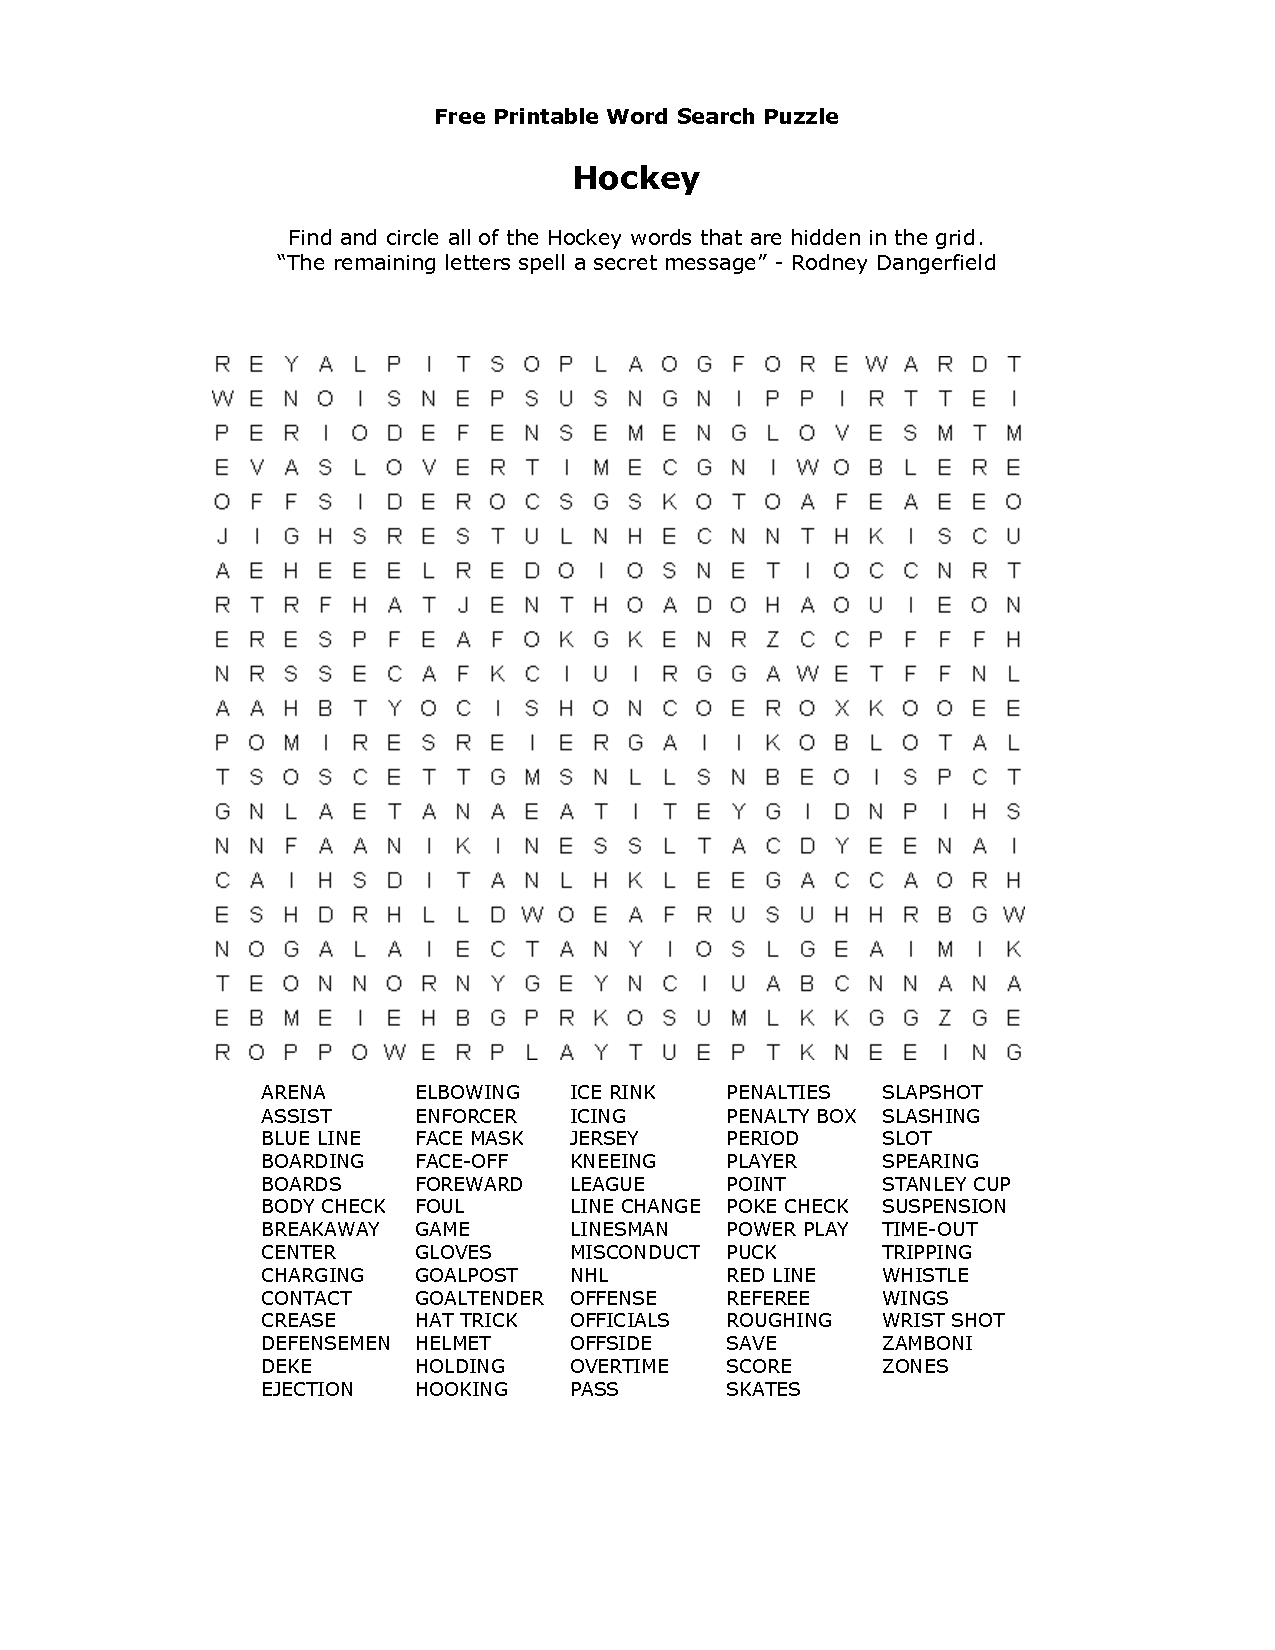 Free Printable Word Searches | Kiddo Shelter - Free Printable Puzzle Worksheets